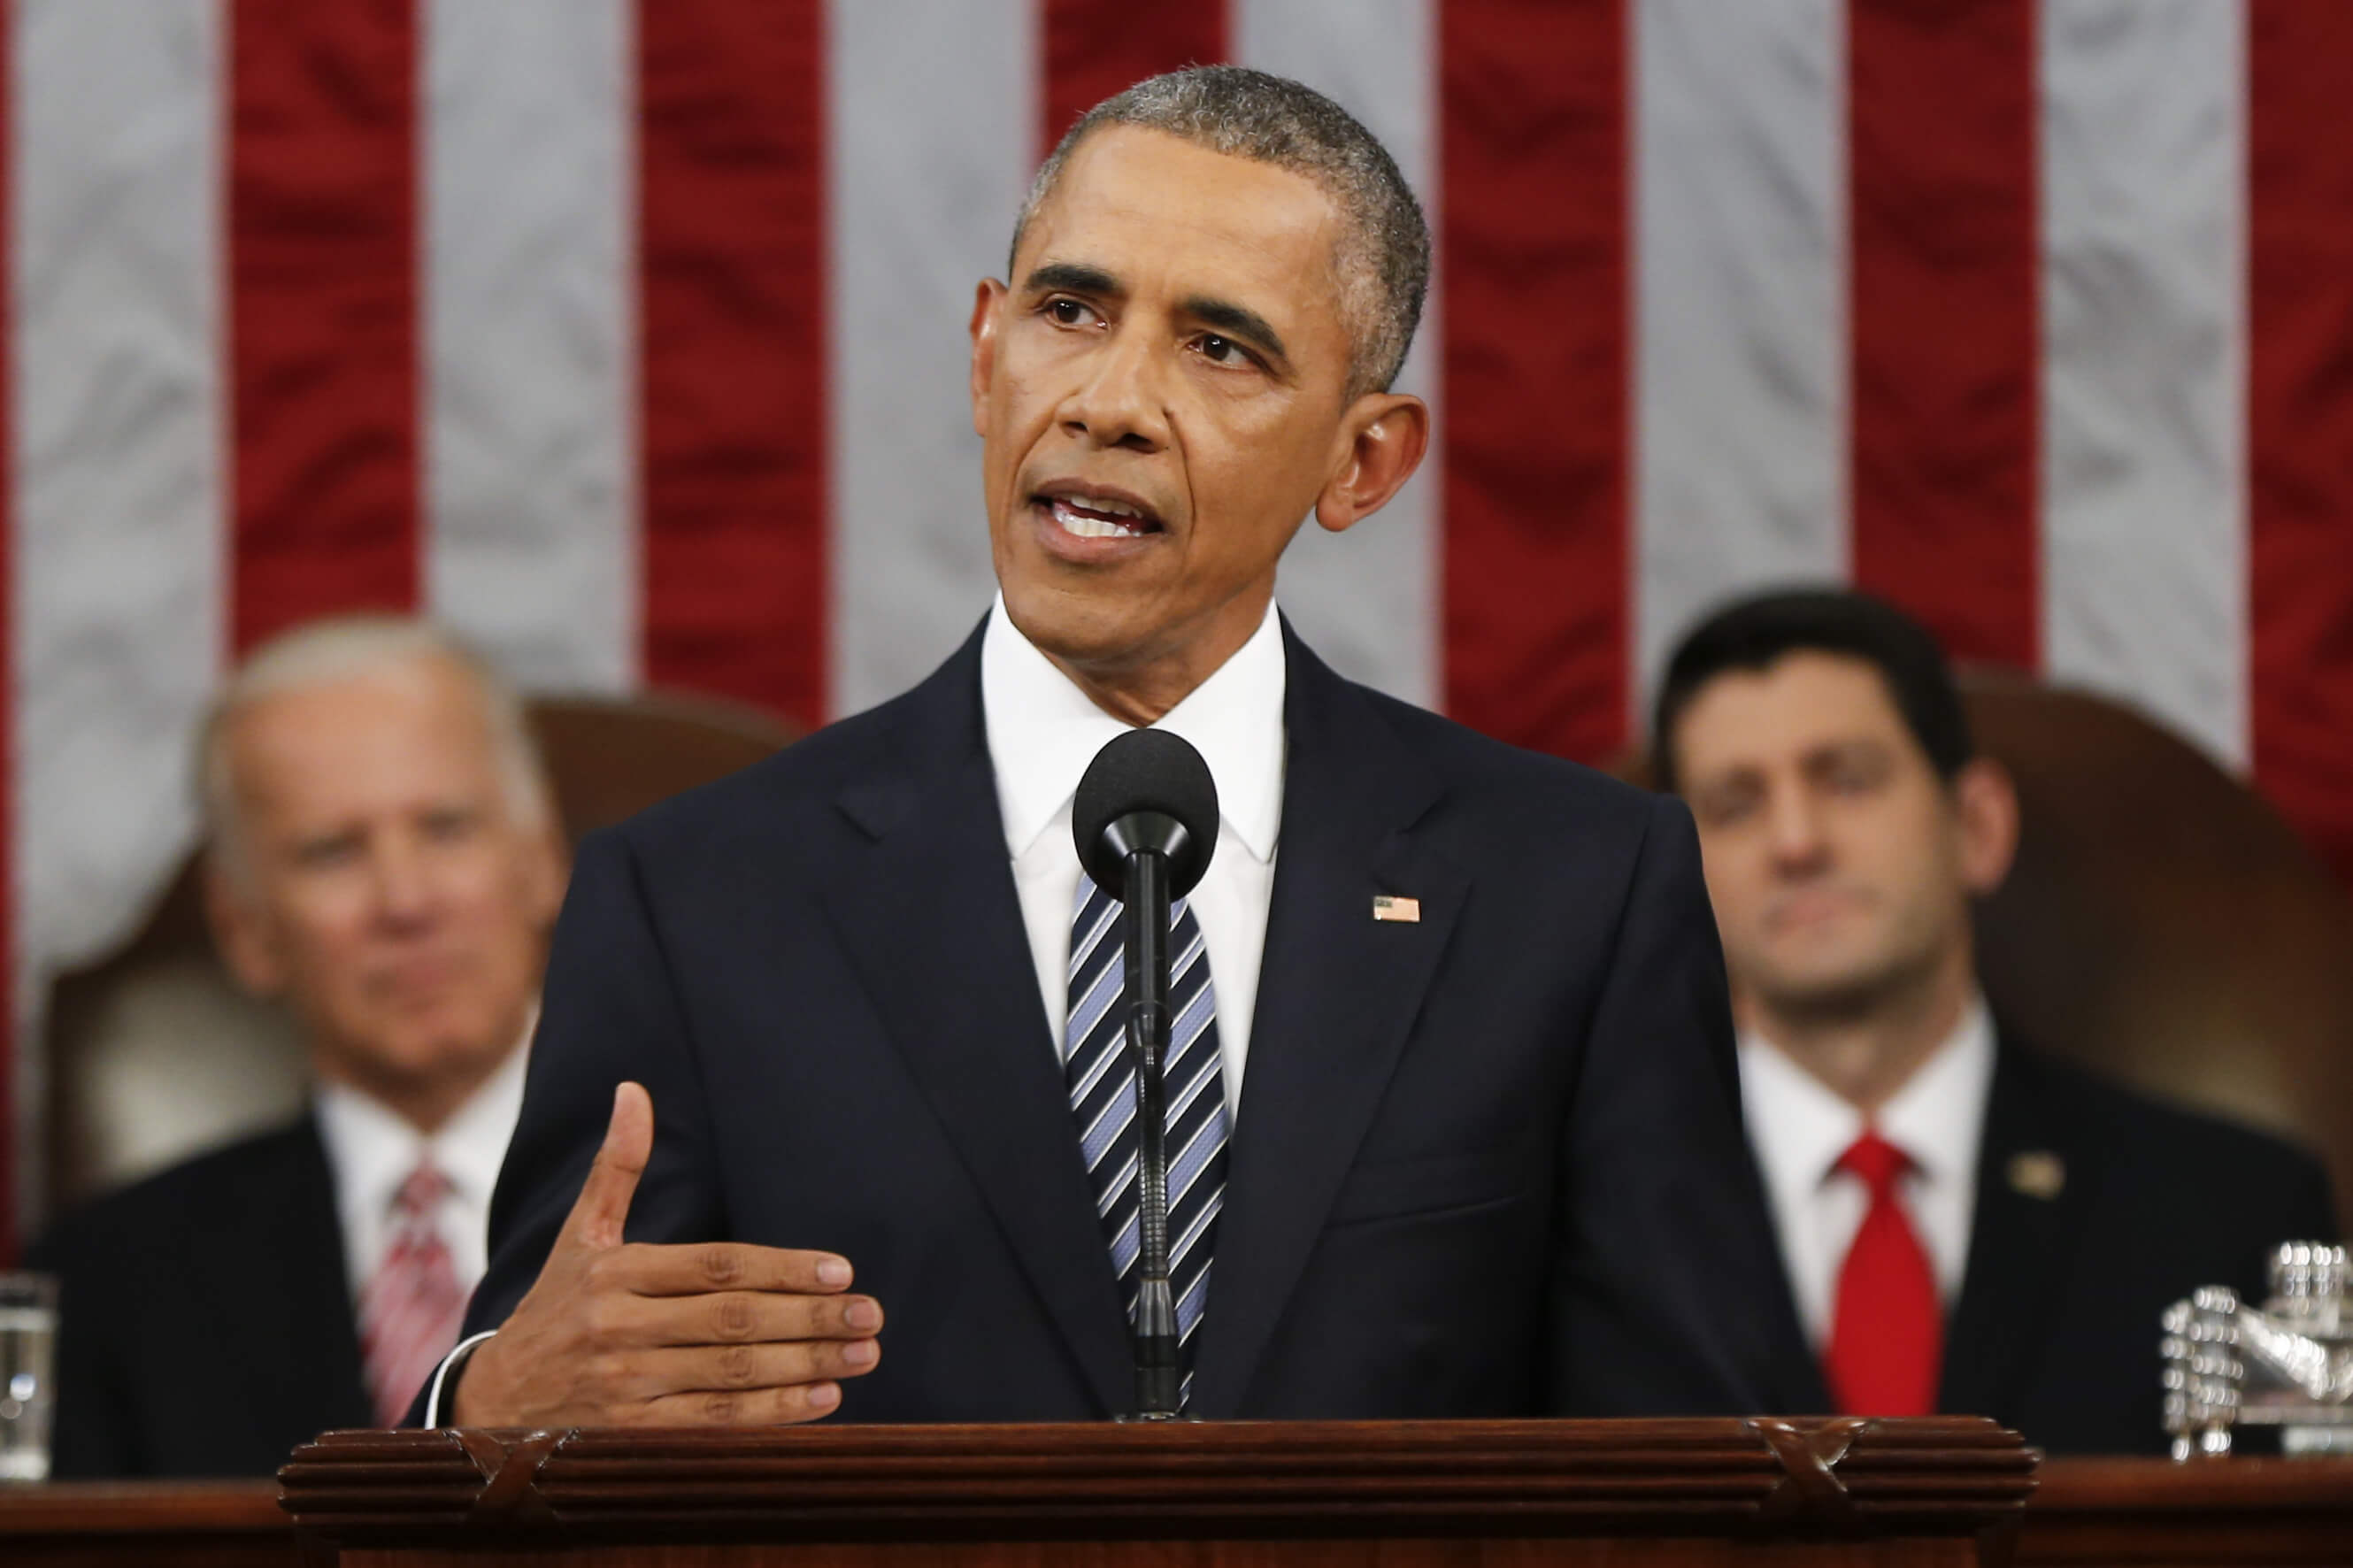 President Barack Obama delivers his State of the Union address before a joint session of Congress on Capitol Hill in Washington, Tuesday, January 12, 2016. (AP Photo/Evan Vucci, Pool)